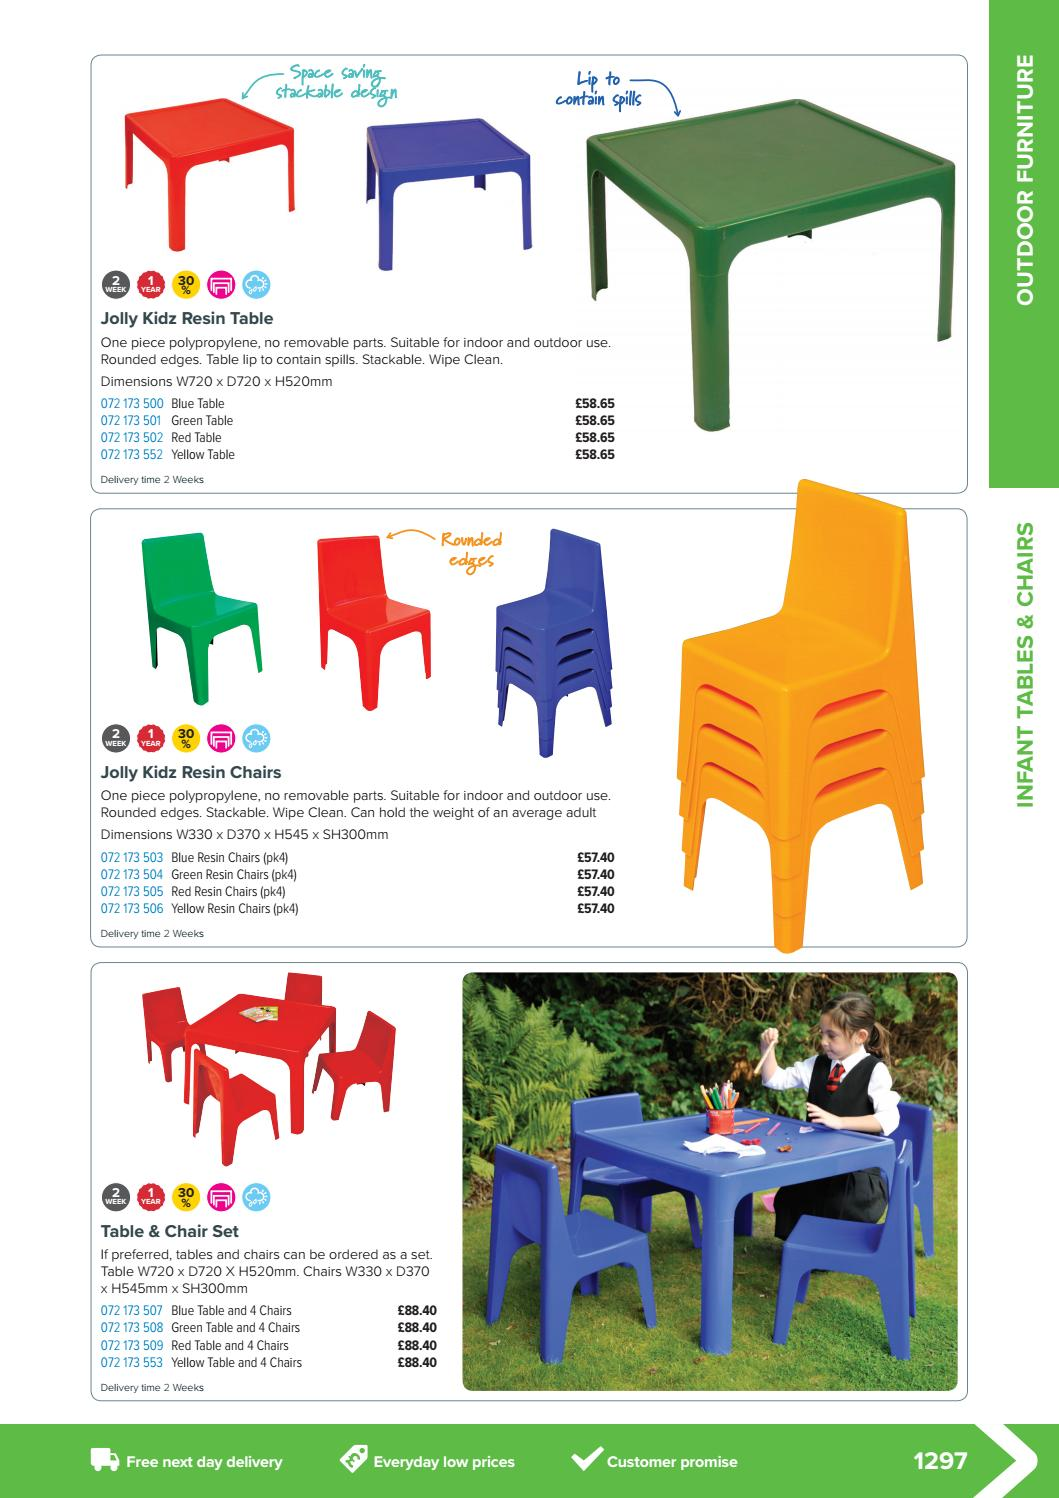 Tremendous Kcs Catalogue Outdoor Furniture 2018 19 By Kcs Uk Issuu Evergreenethics Interior Chair Design Evergreenethicsorg